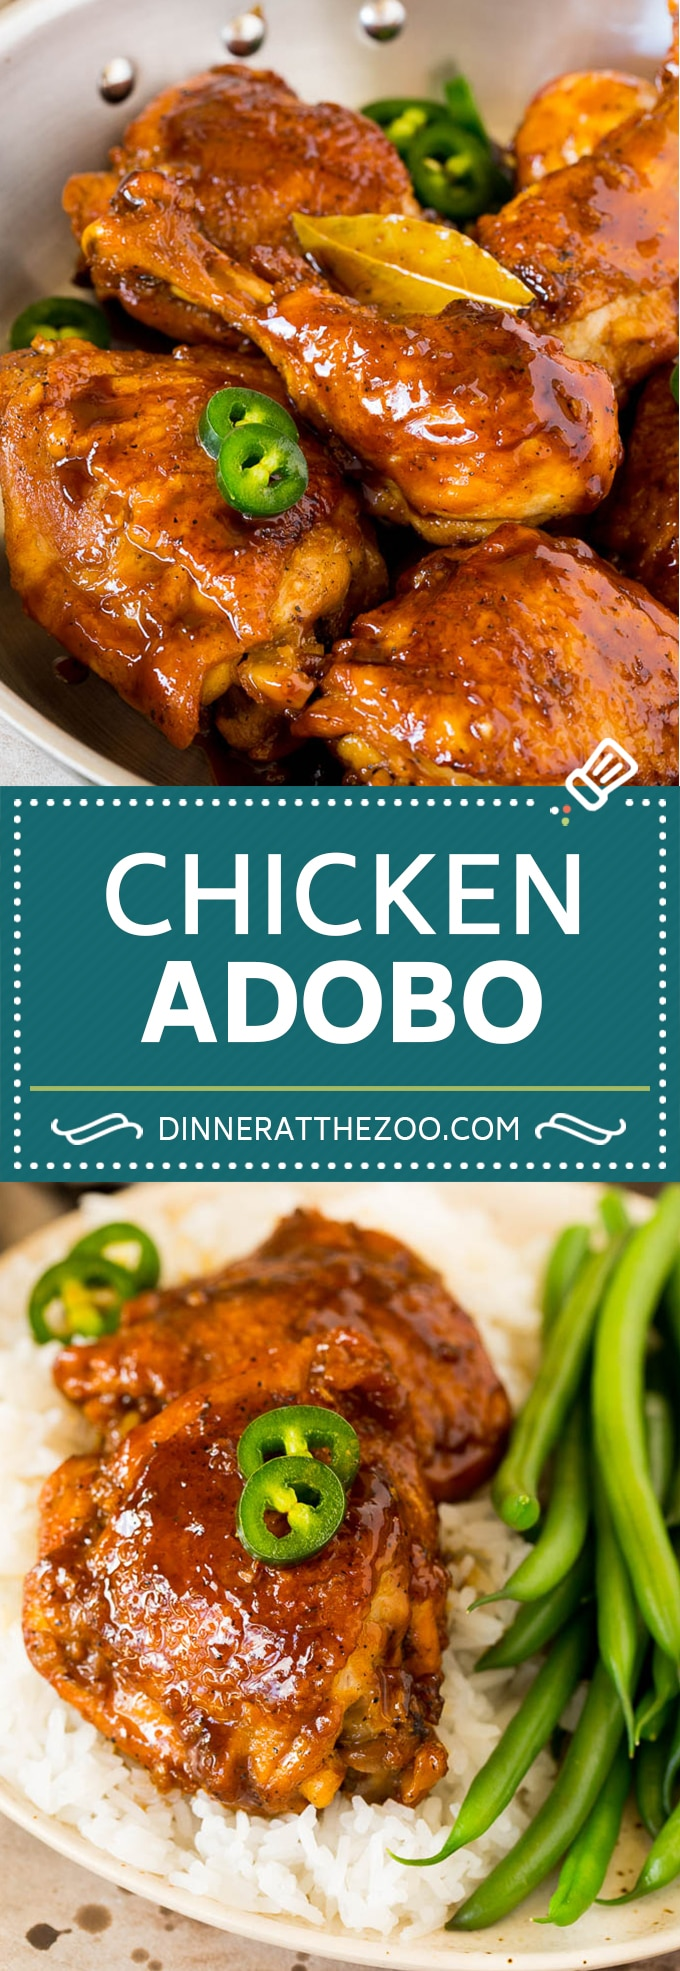 This chicken adobo is a Filipino dish made with chicken pieces simmered in a sweet and savory sauce.